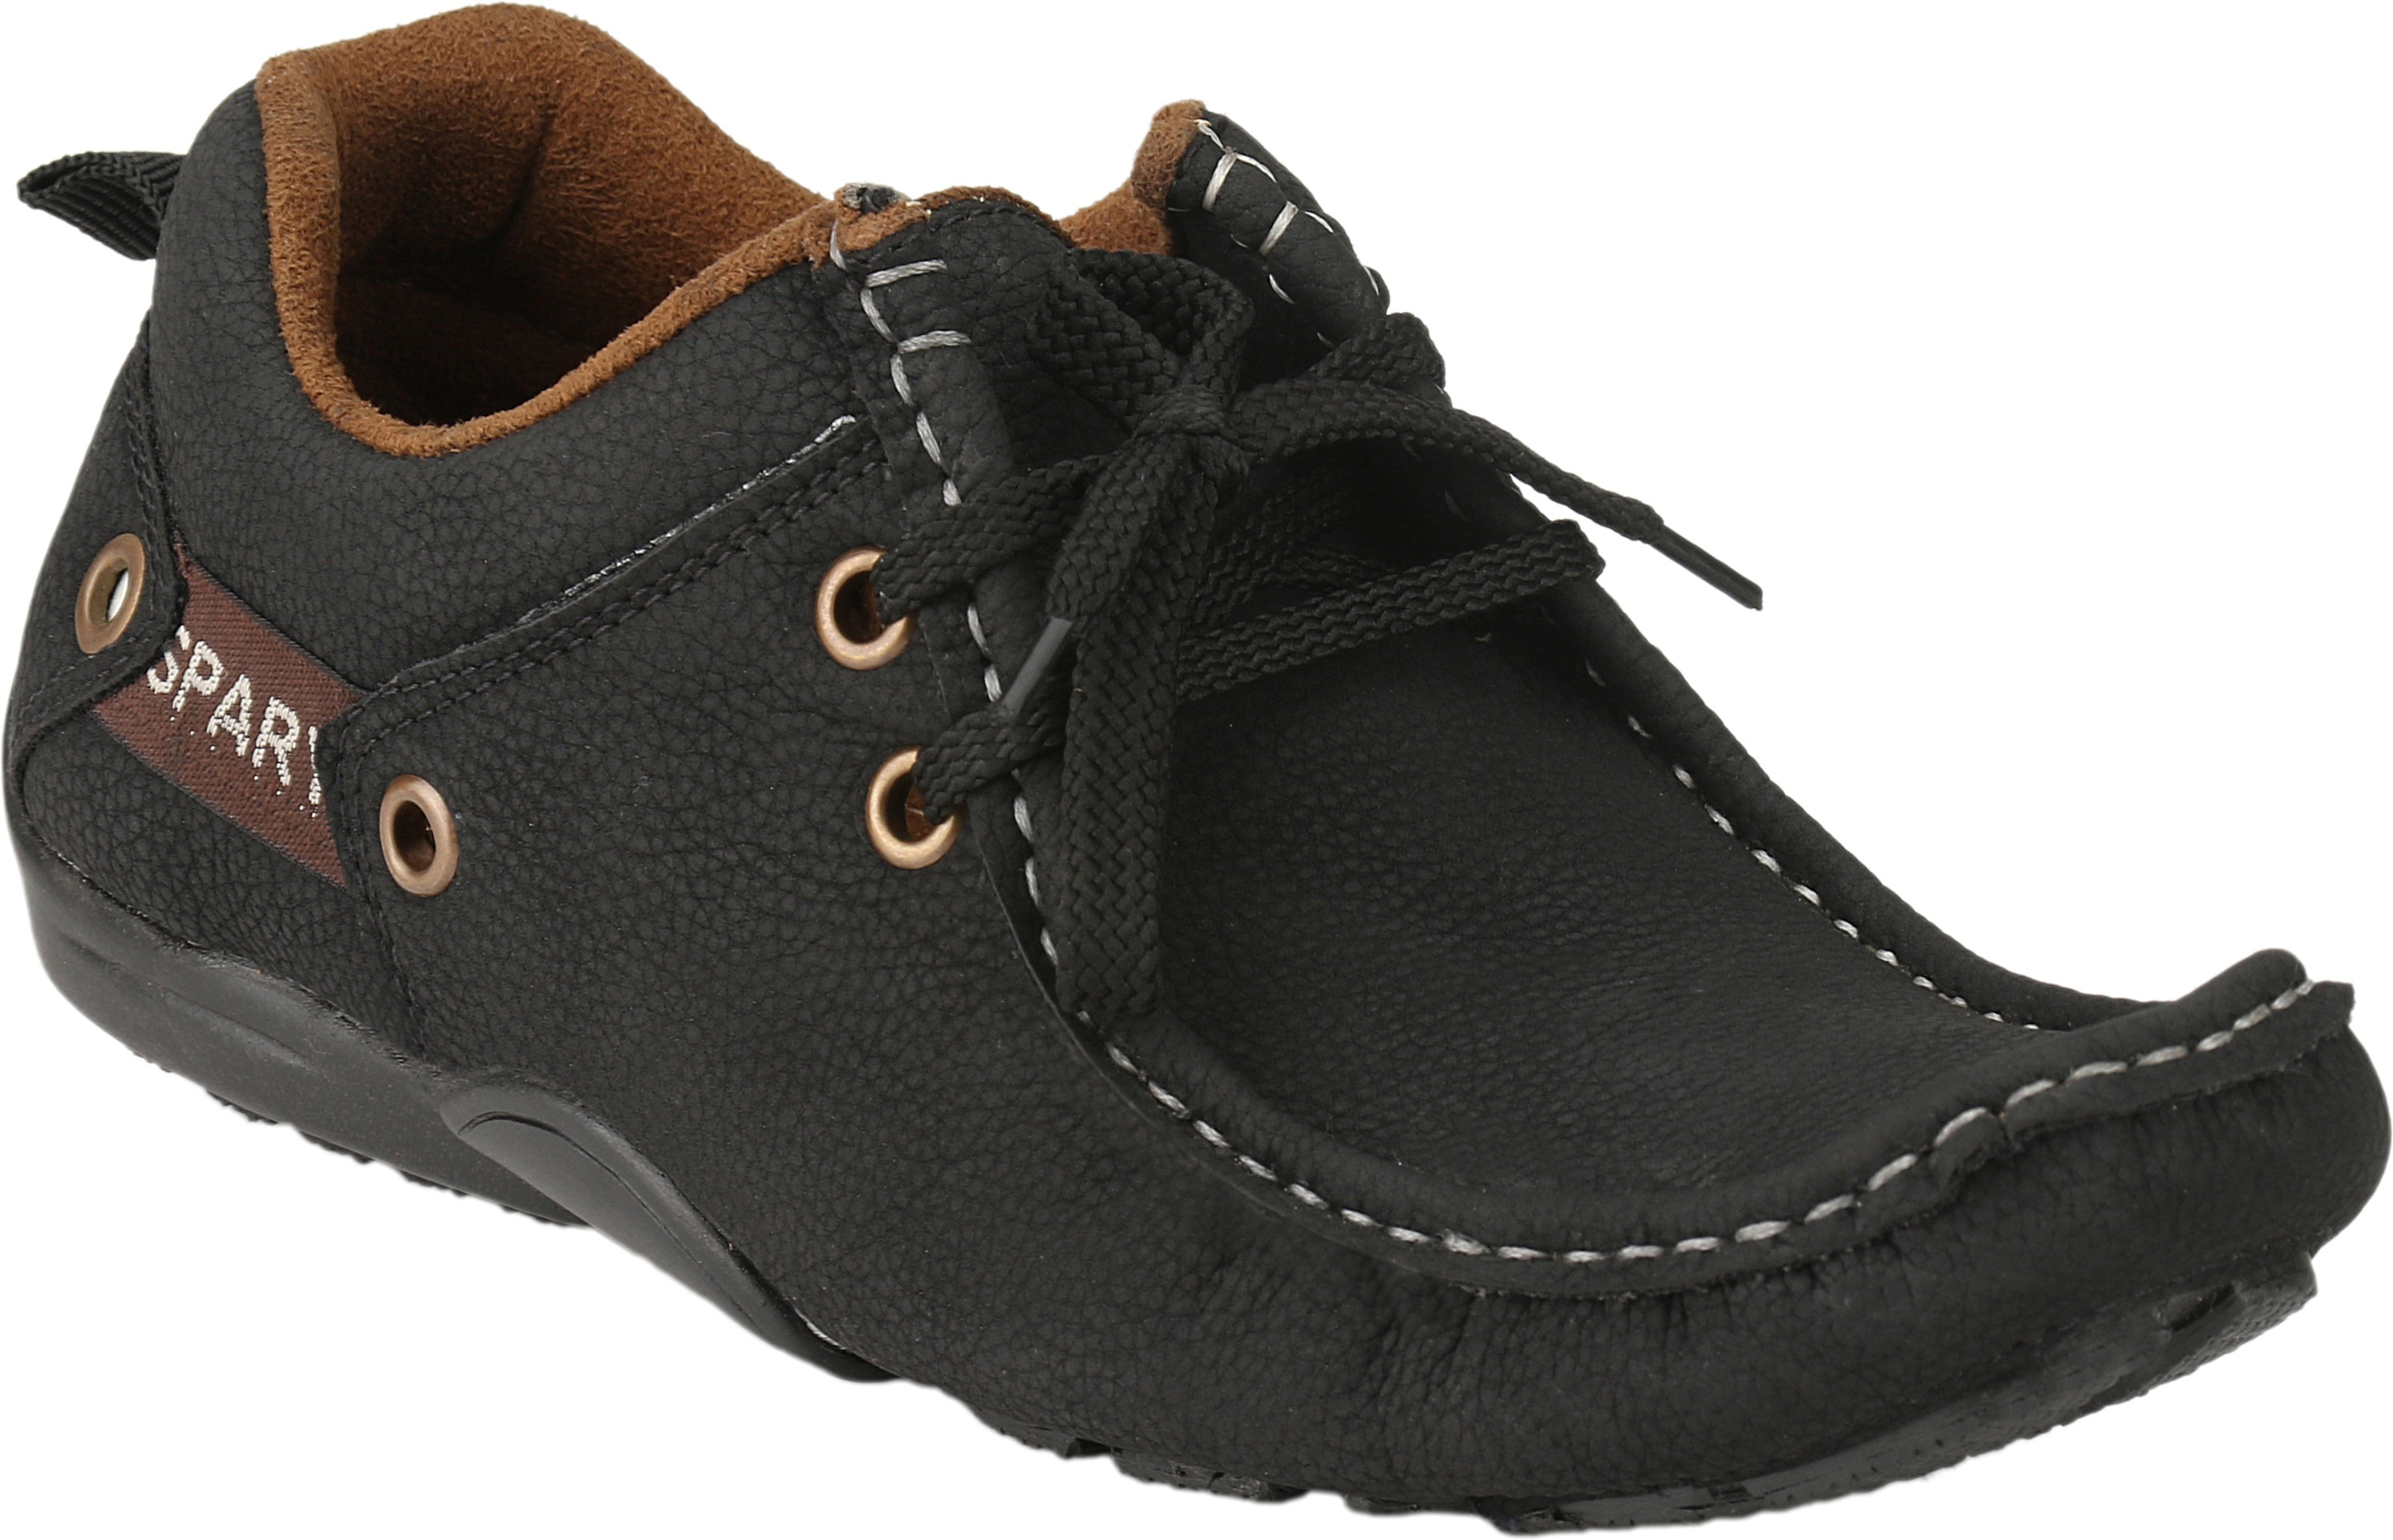 Cris Martin Casual Shoes(Black)